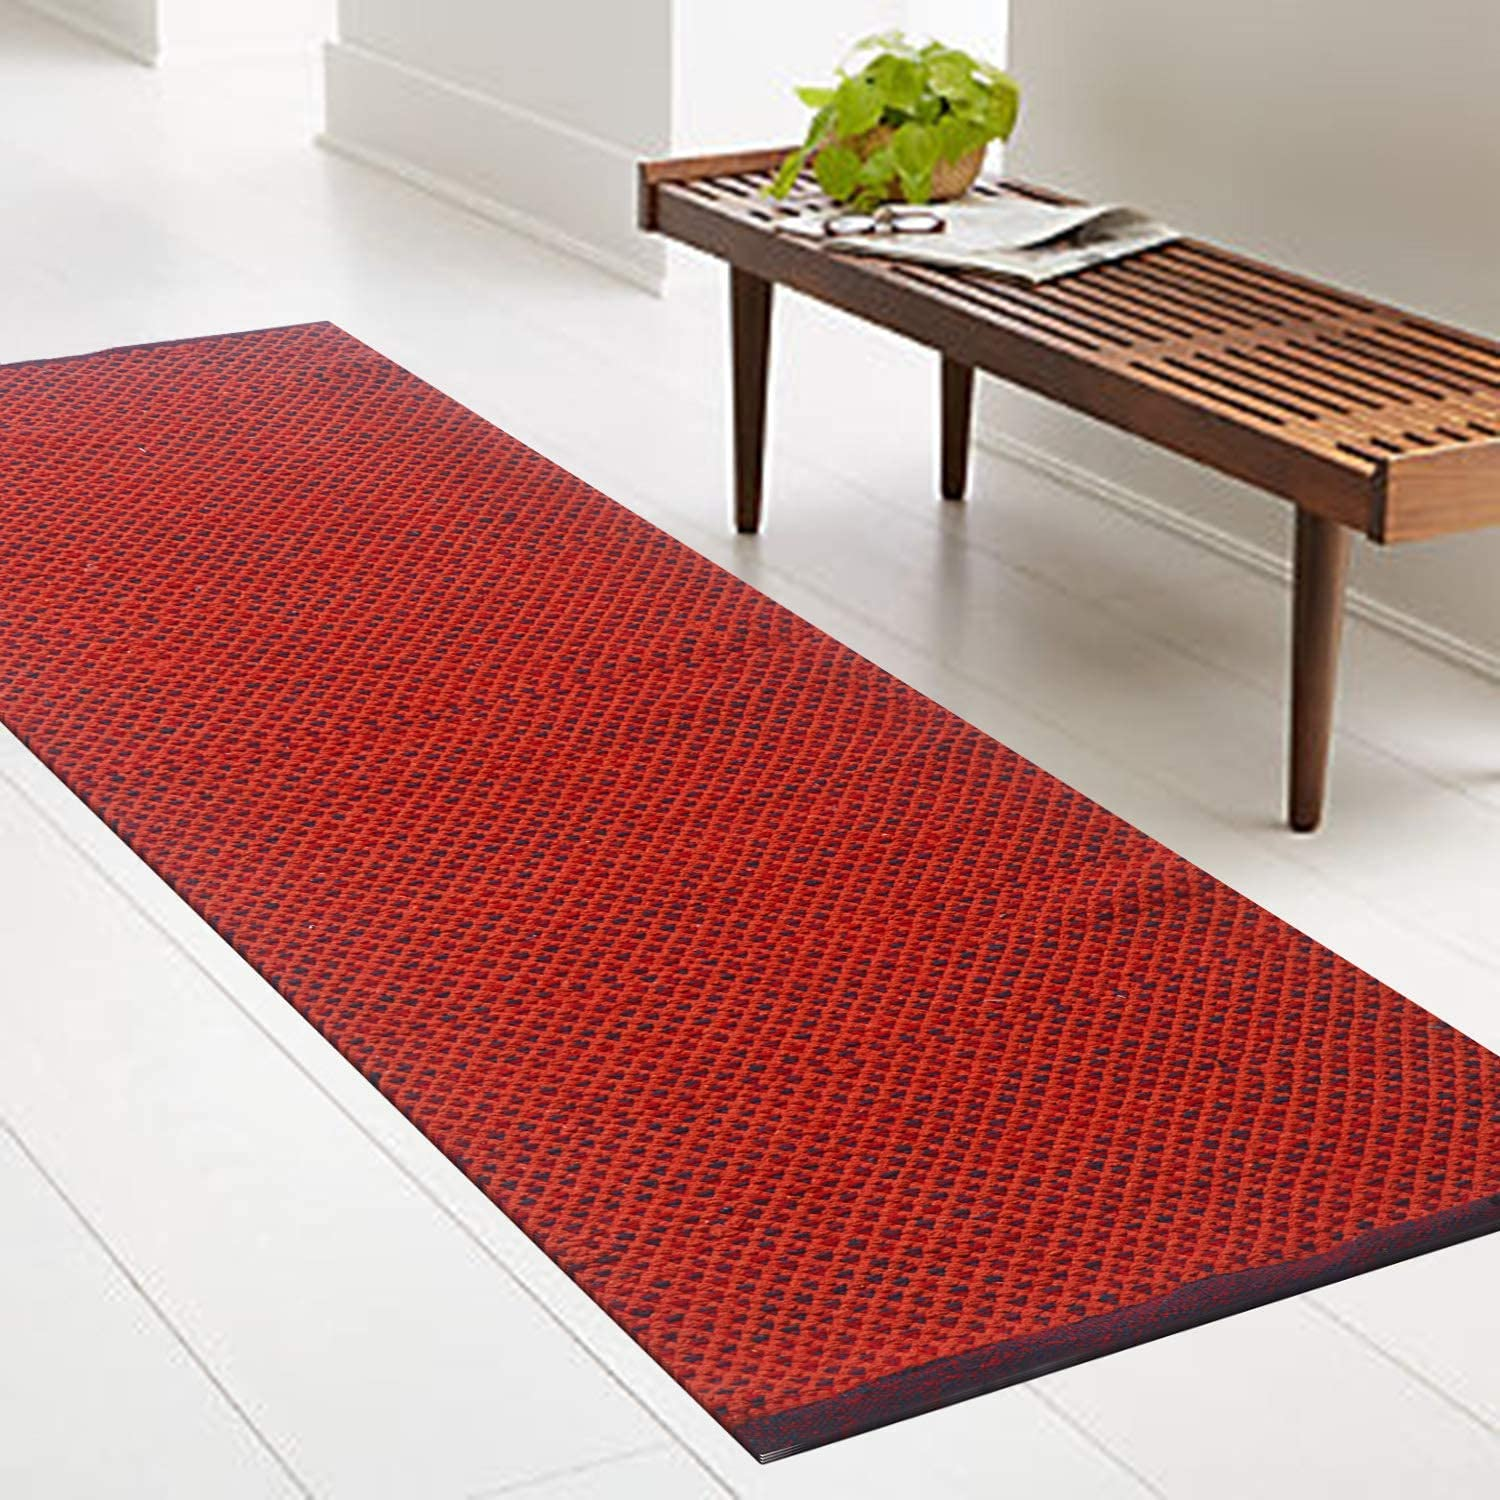 Chardin Home- Boston: Hand Woven Recycled Cotton Rug, Rust, Size 2'x5'. Machine Washable.